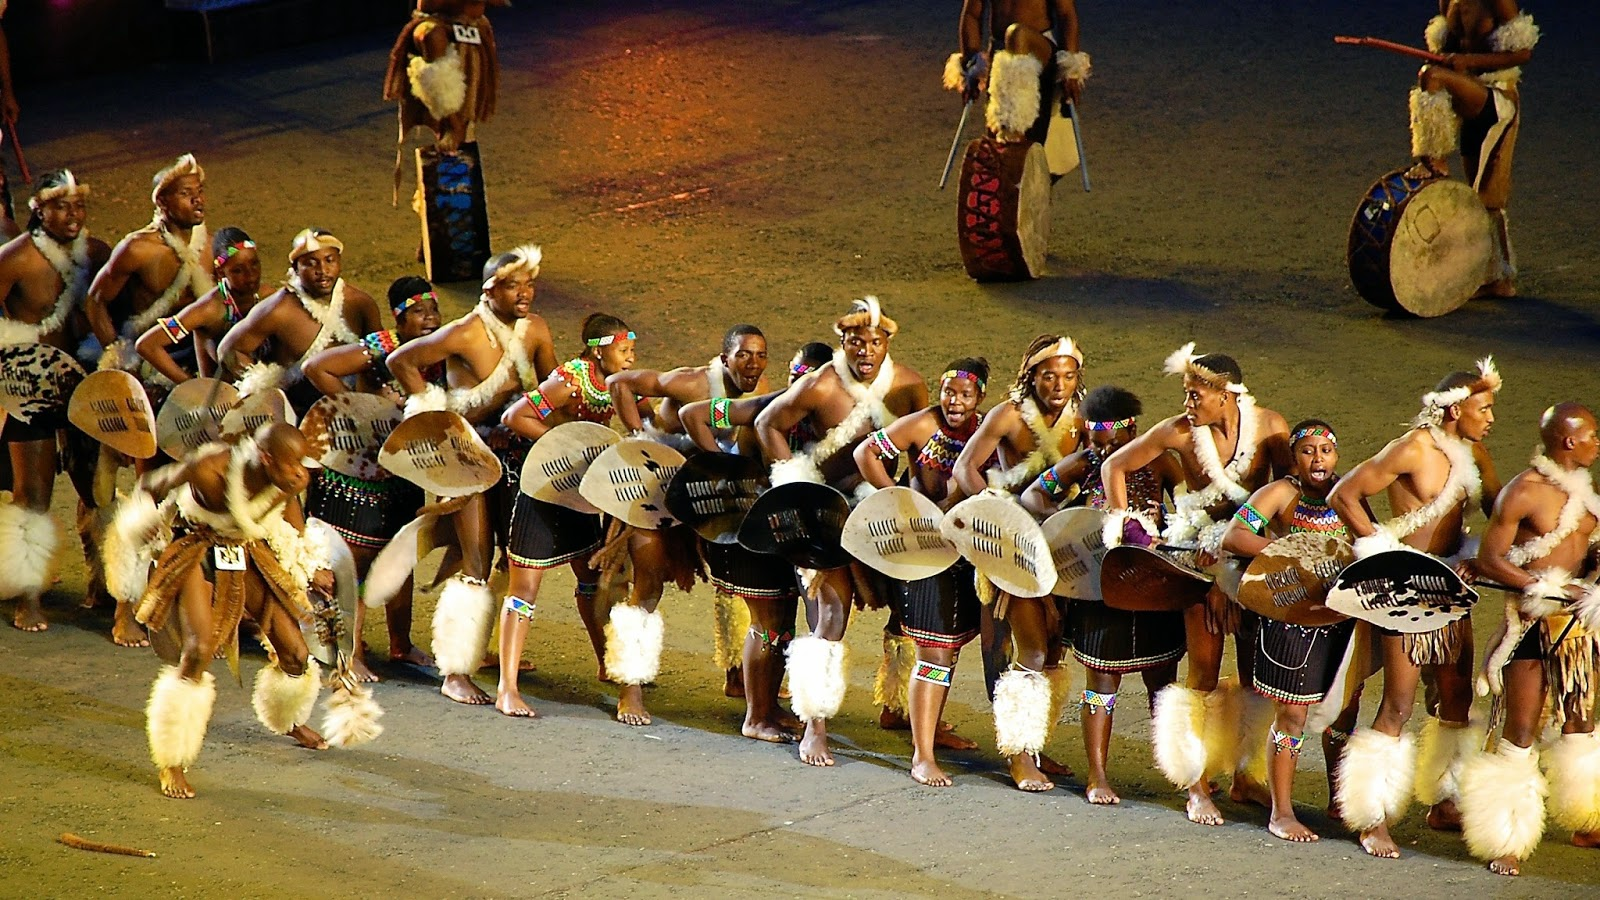 Zulu dancing at Royal Edinburgh Military Tattoo